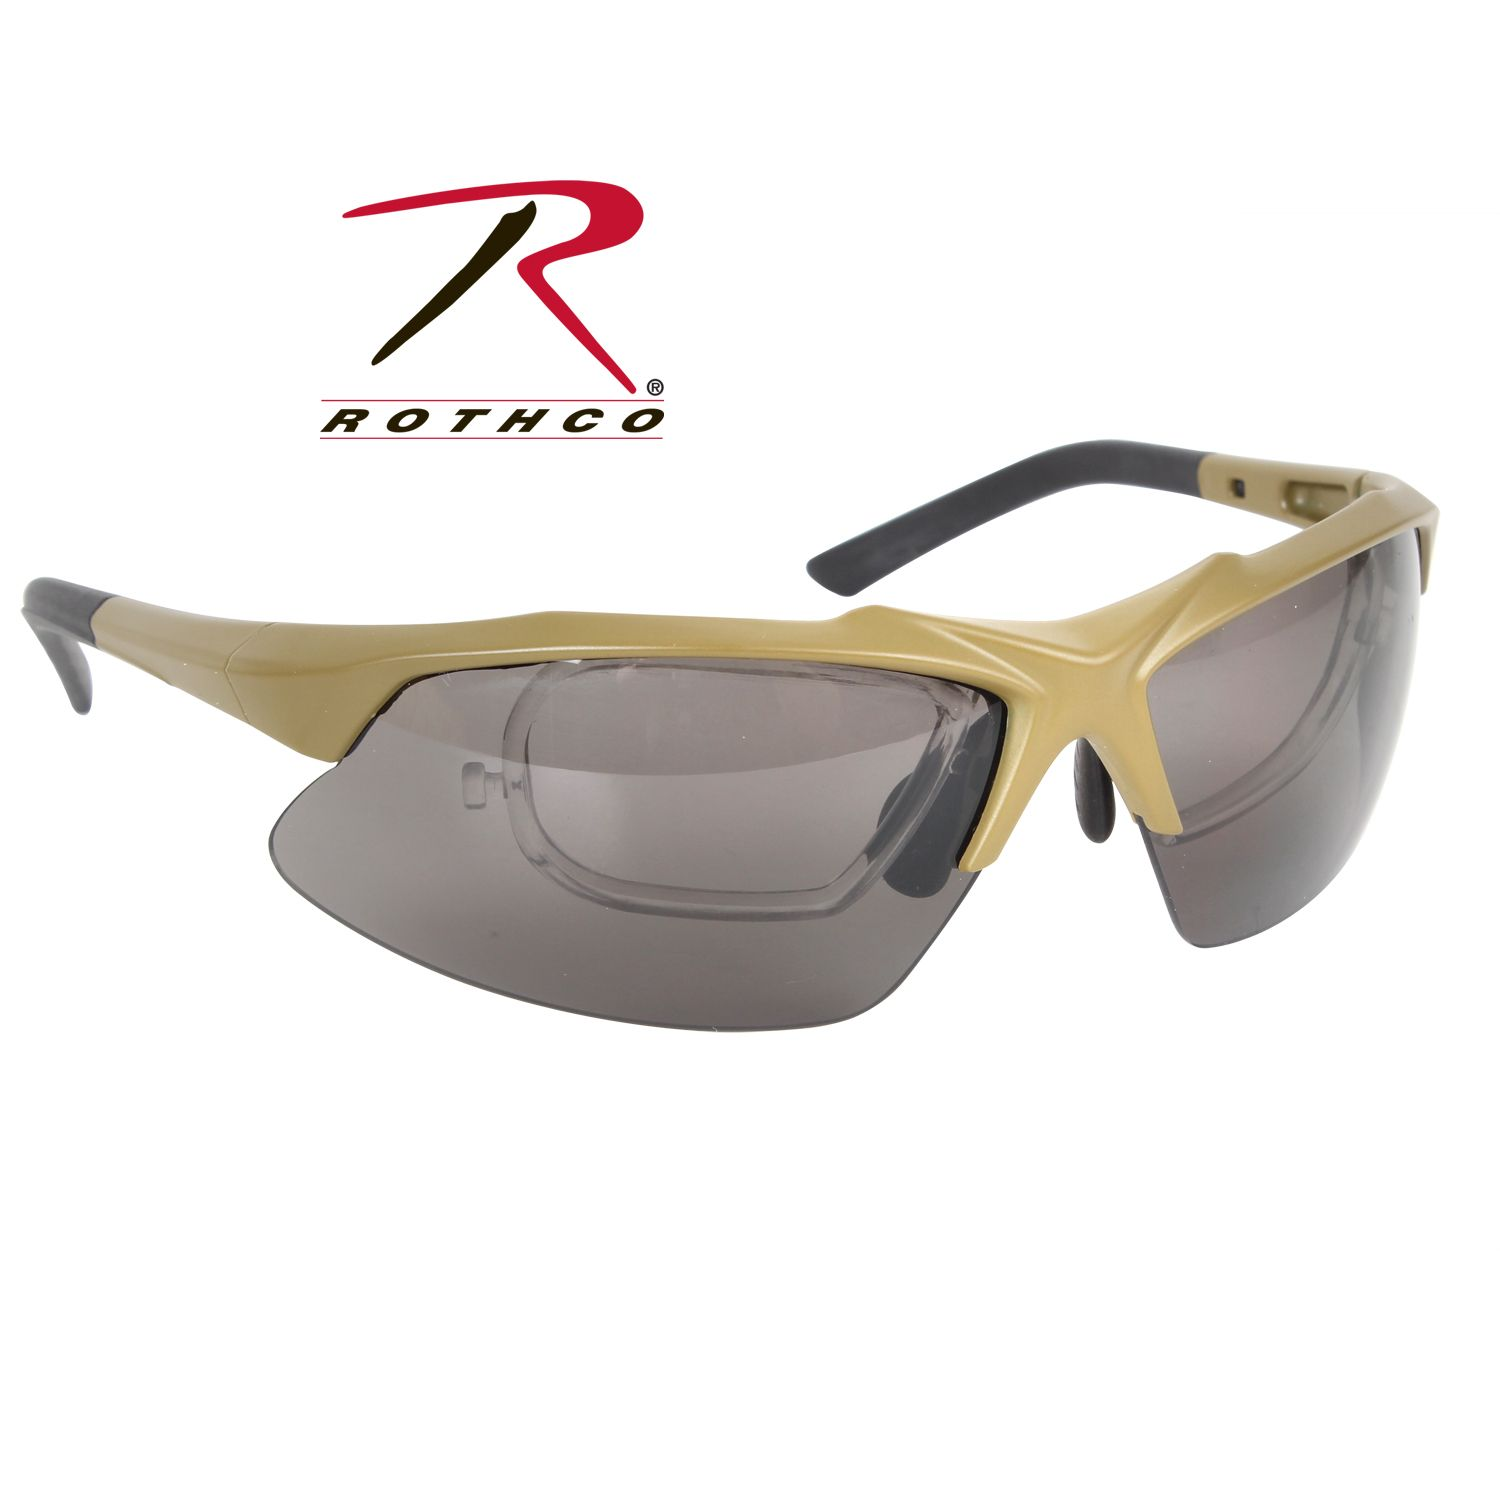 Protective & Tactical Eyewear